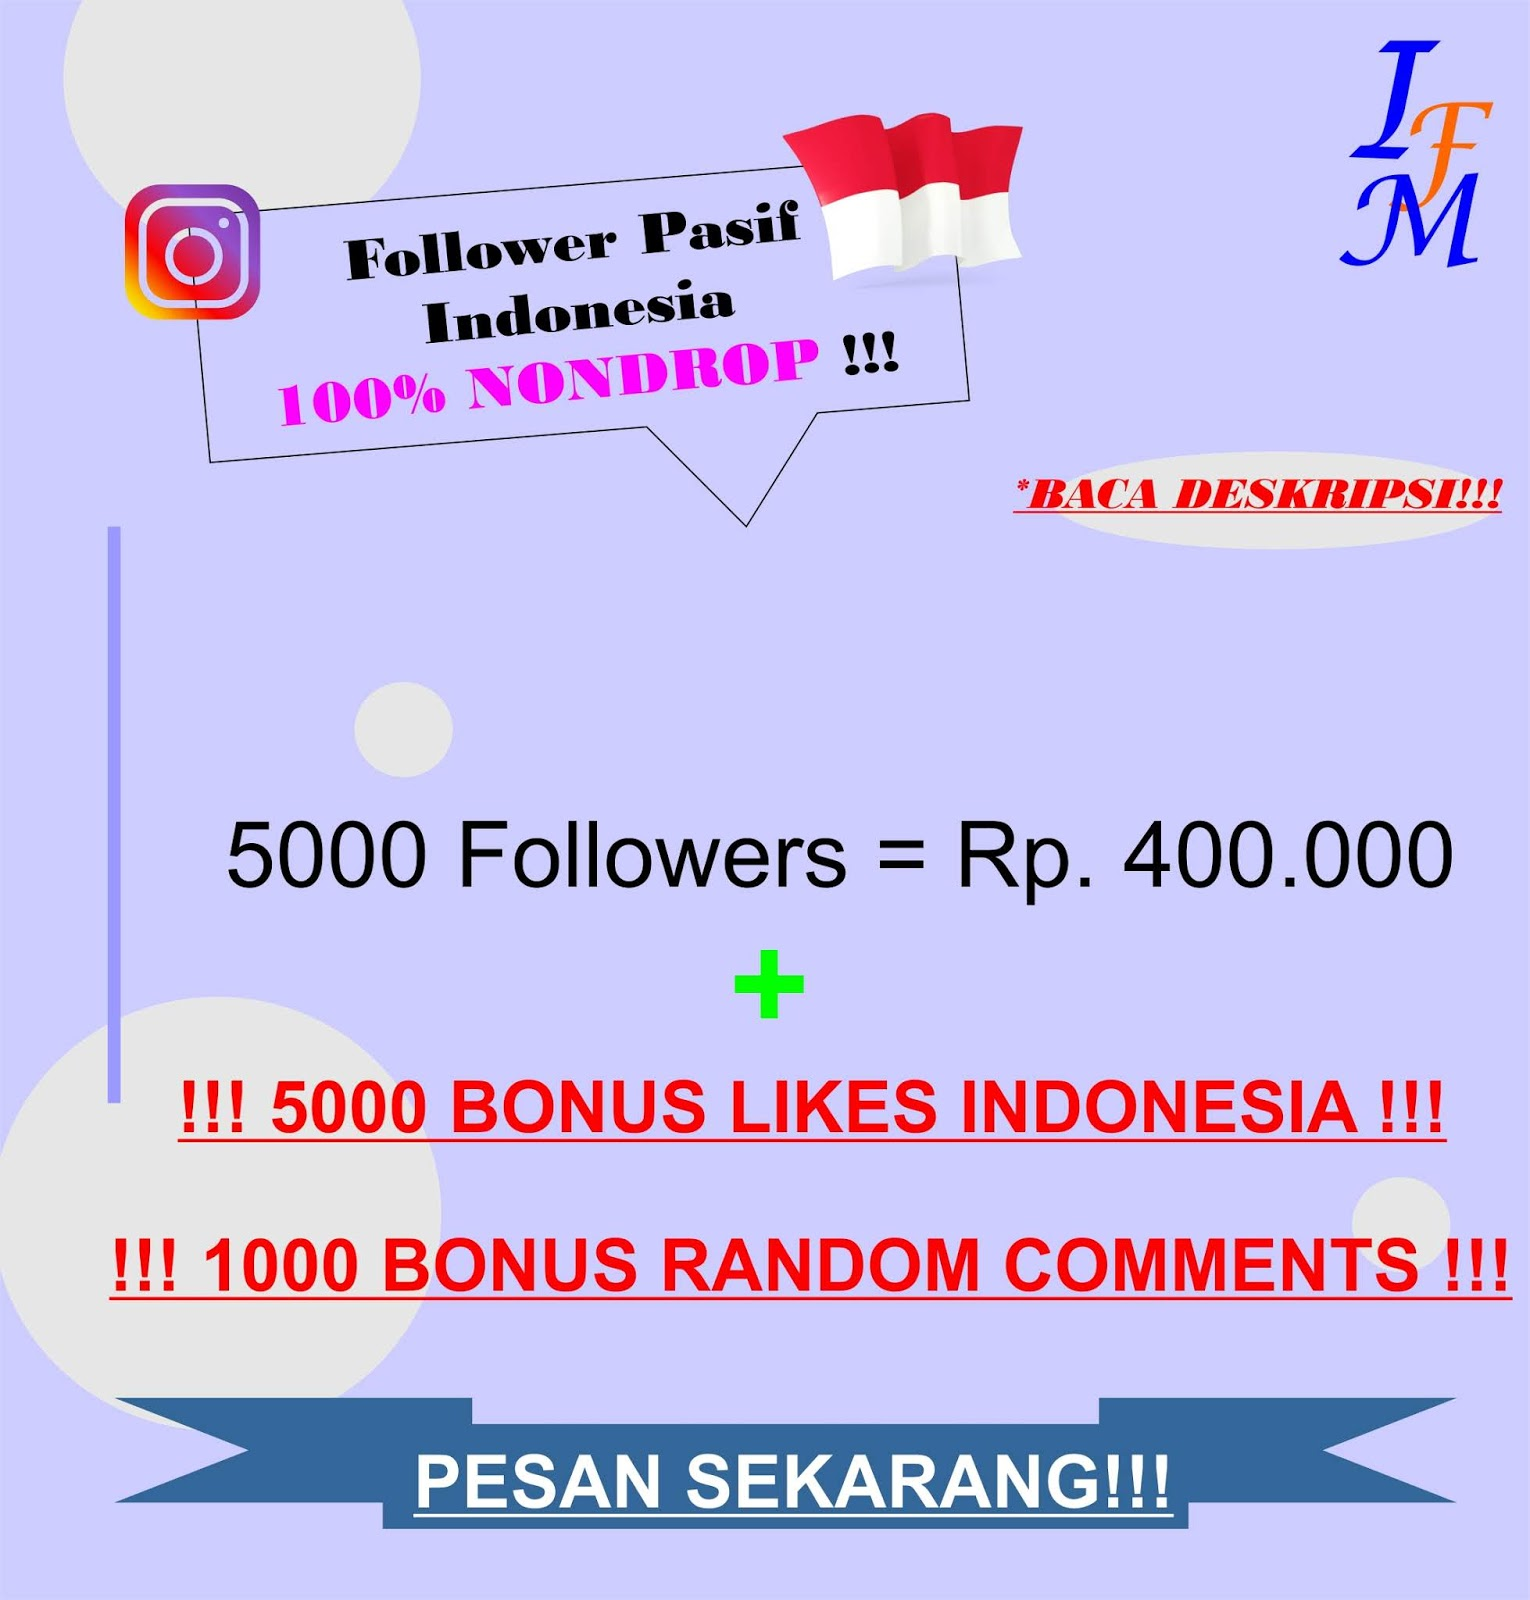 Jasa Tambah 5000 Follower Akun Instagram Pasif Original Indonesia 100% NONDROP Murah